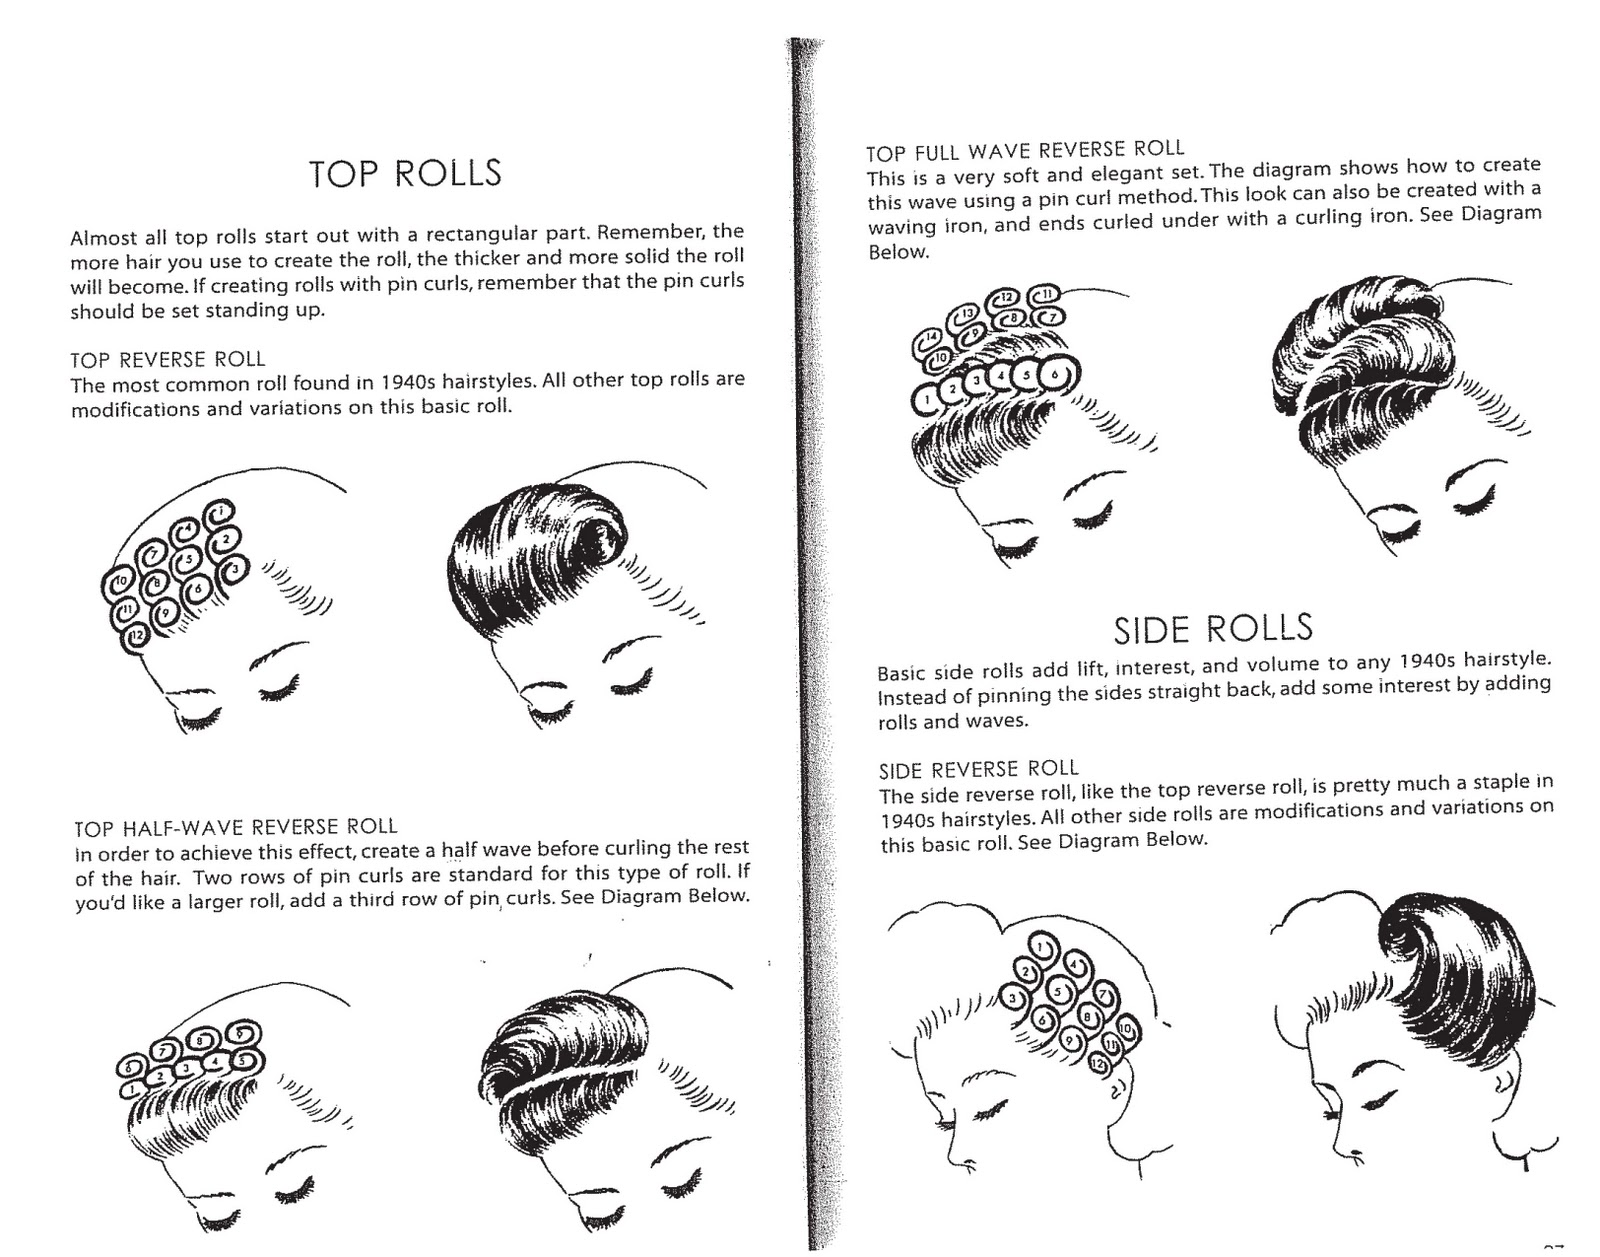 vintage pin curls diagram simple food chain tart deco glamour retro style viva las vegas series 1 i have also started to use the book hairstyling